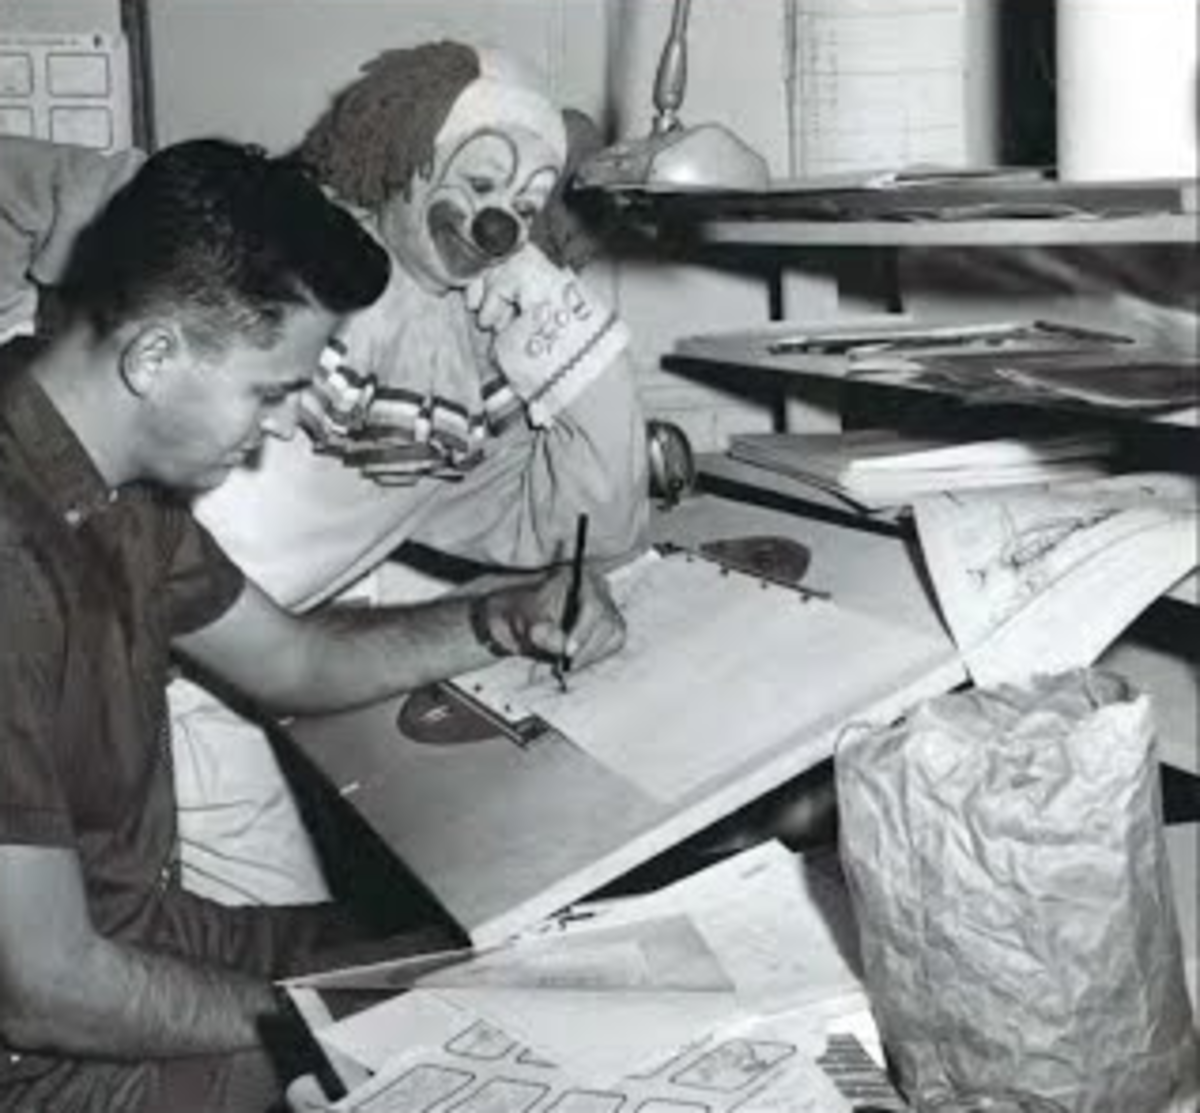 Lou Scheimer working on the Bozo the Clown cartoon